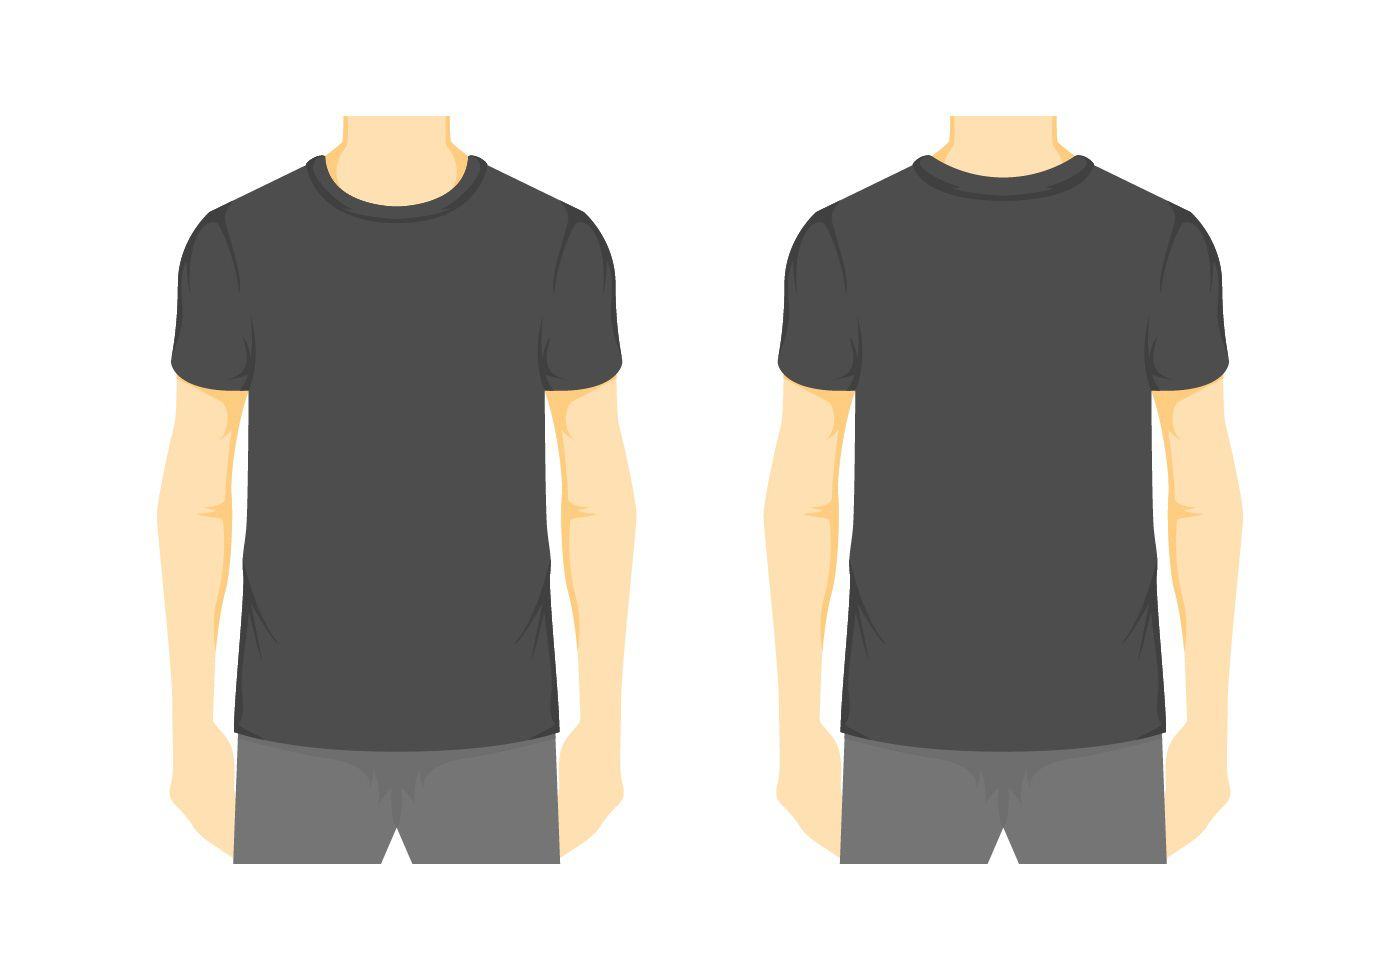 008 Stirring Blank Tee Shirt Template Example  T Design Pdf Free T-shirt Front And Back DownloadFull